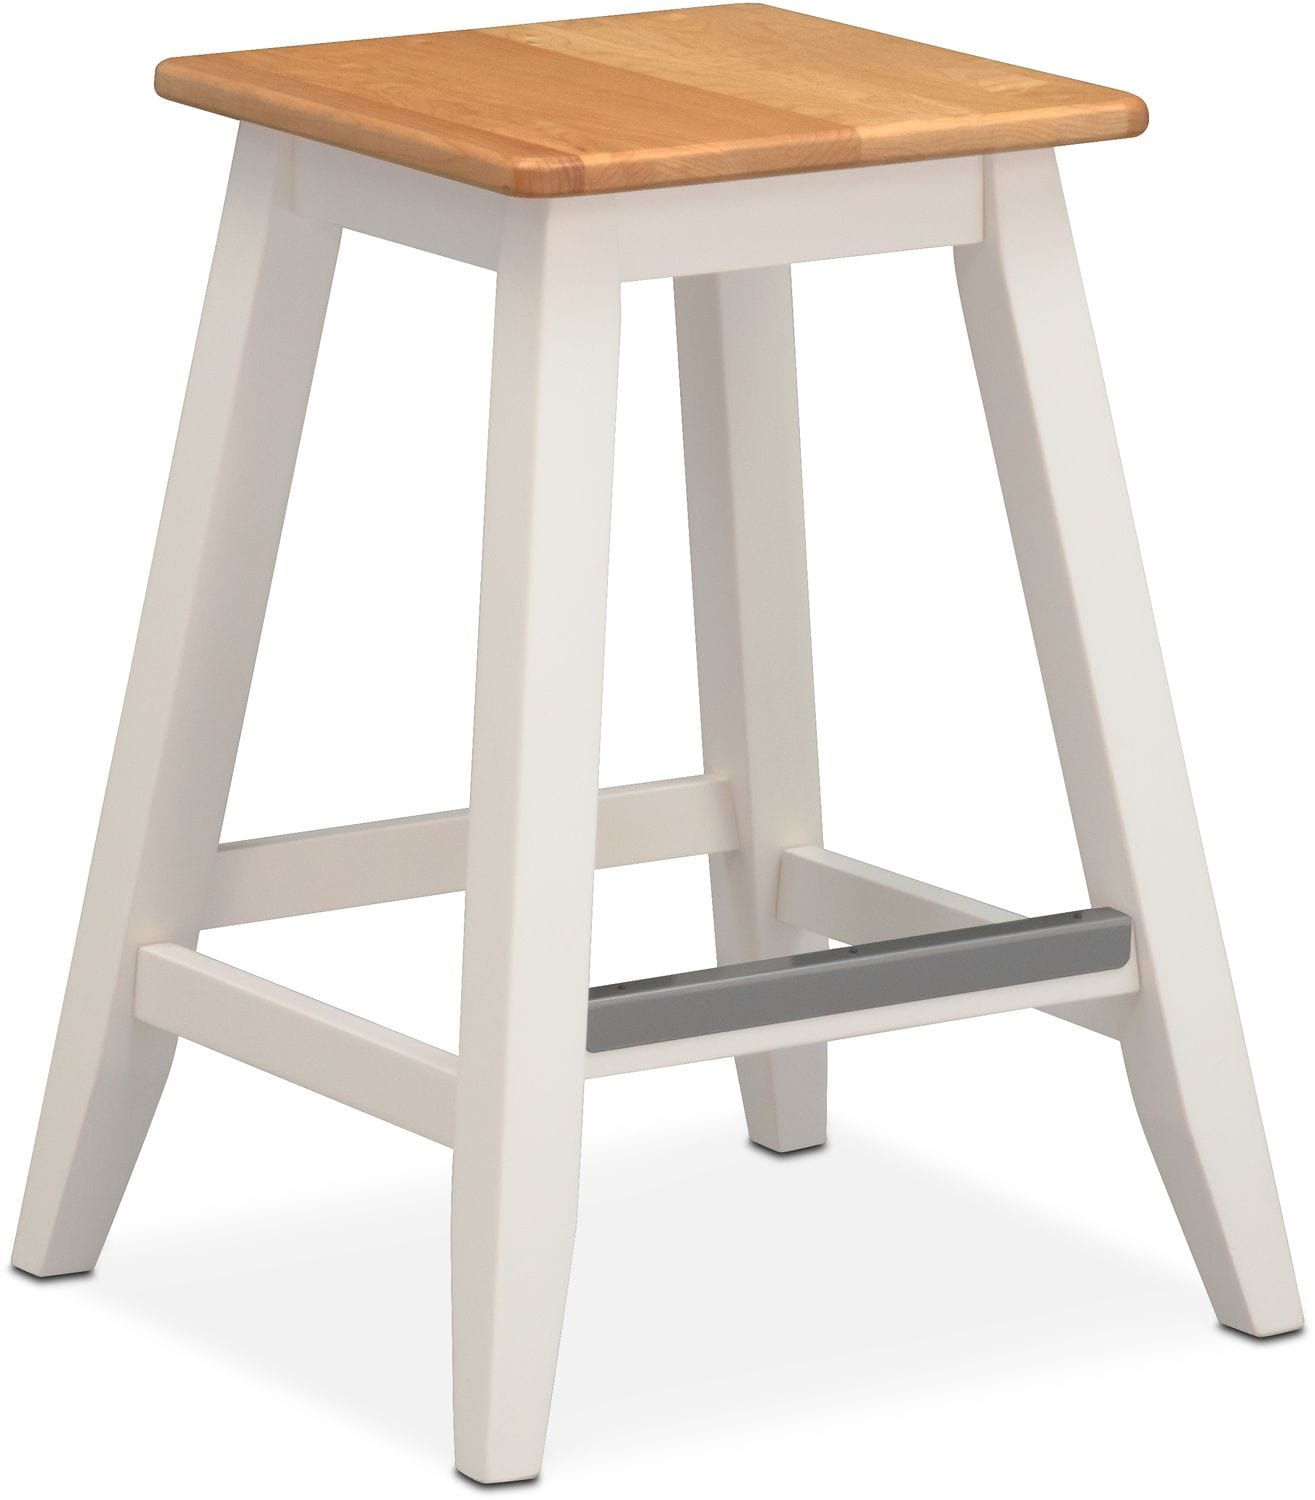 Nantucket Counter-Height Stool - Maple and White